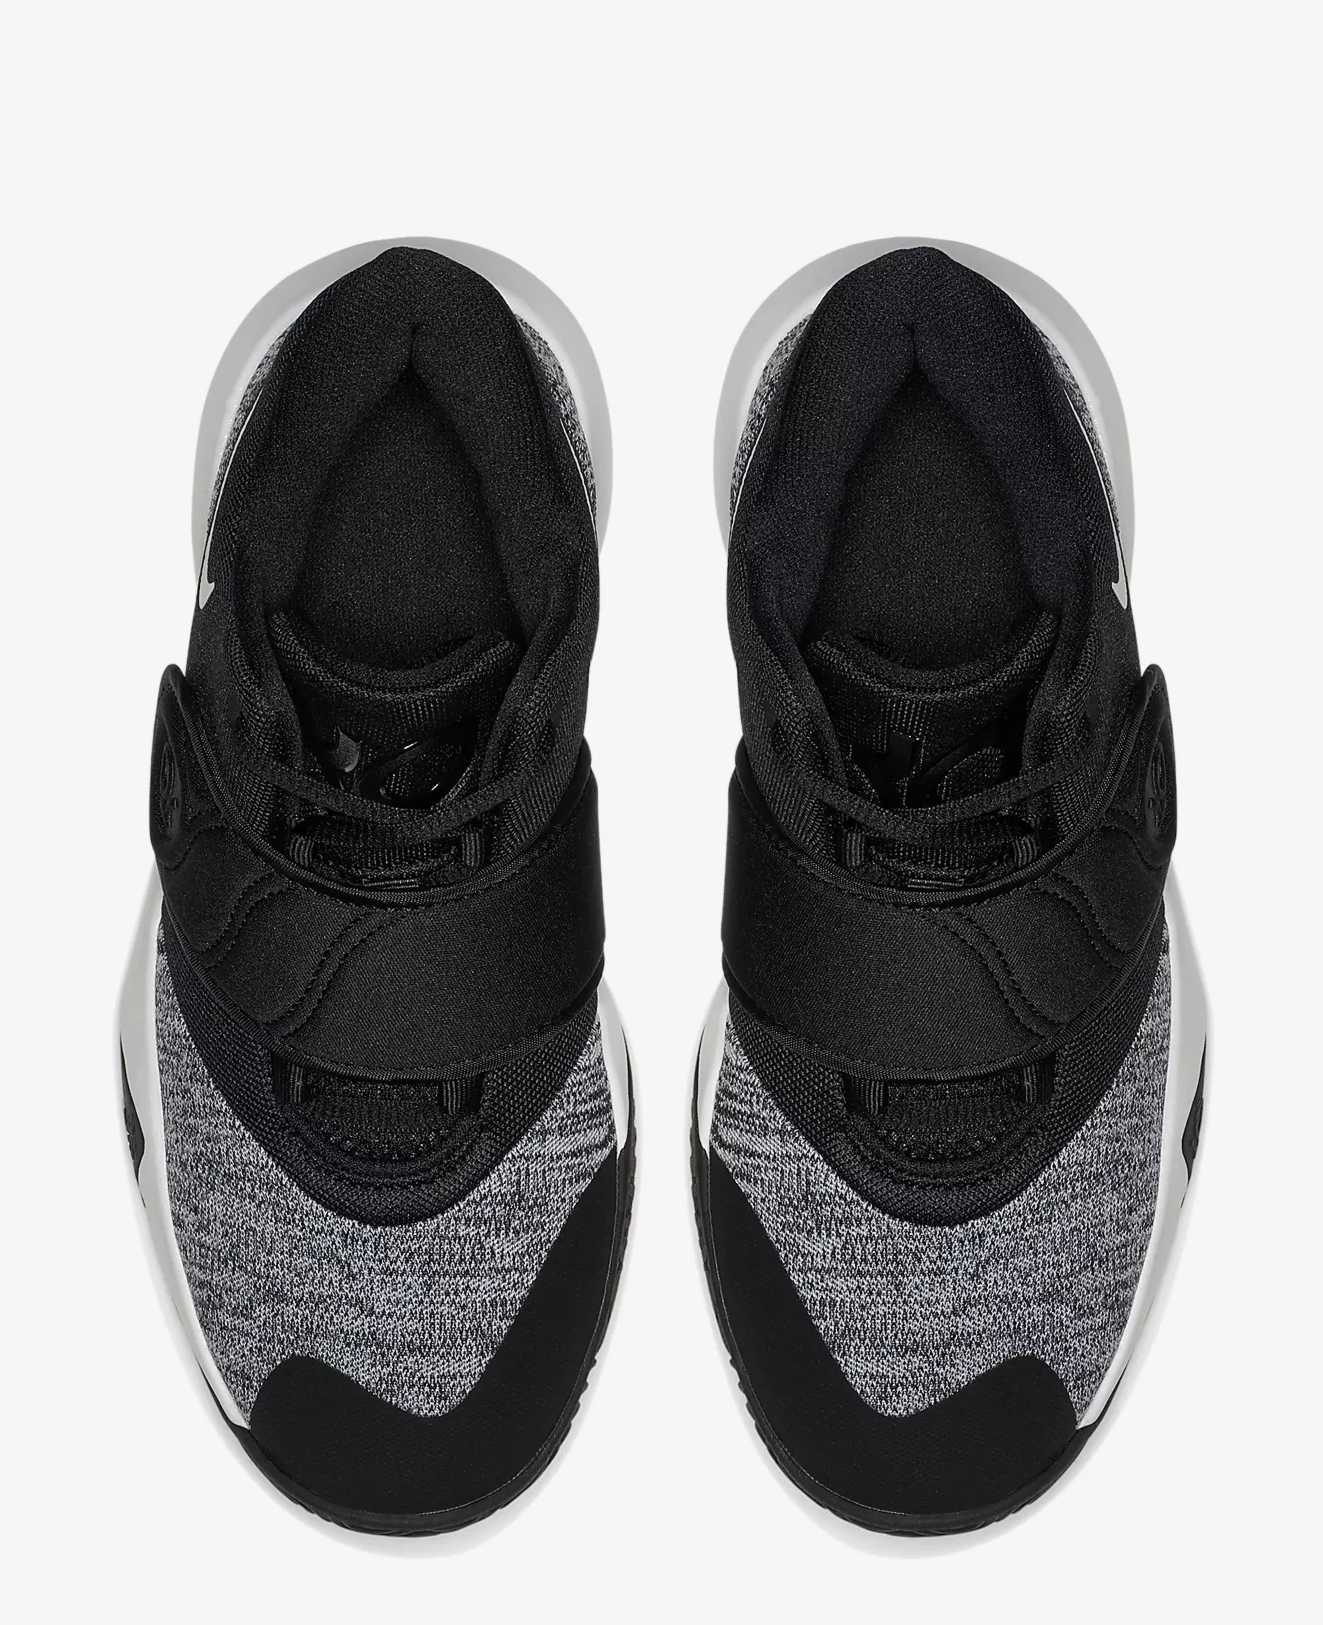 Nike Kids KD Trey 5 VI Basketball Grade-School Shoe - Black/White